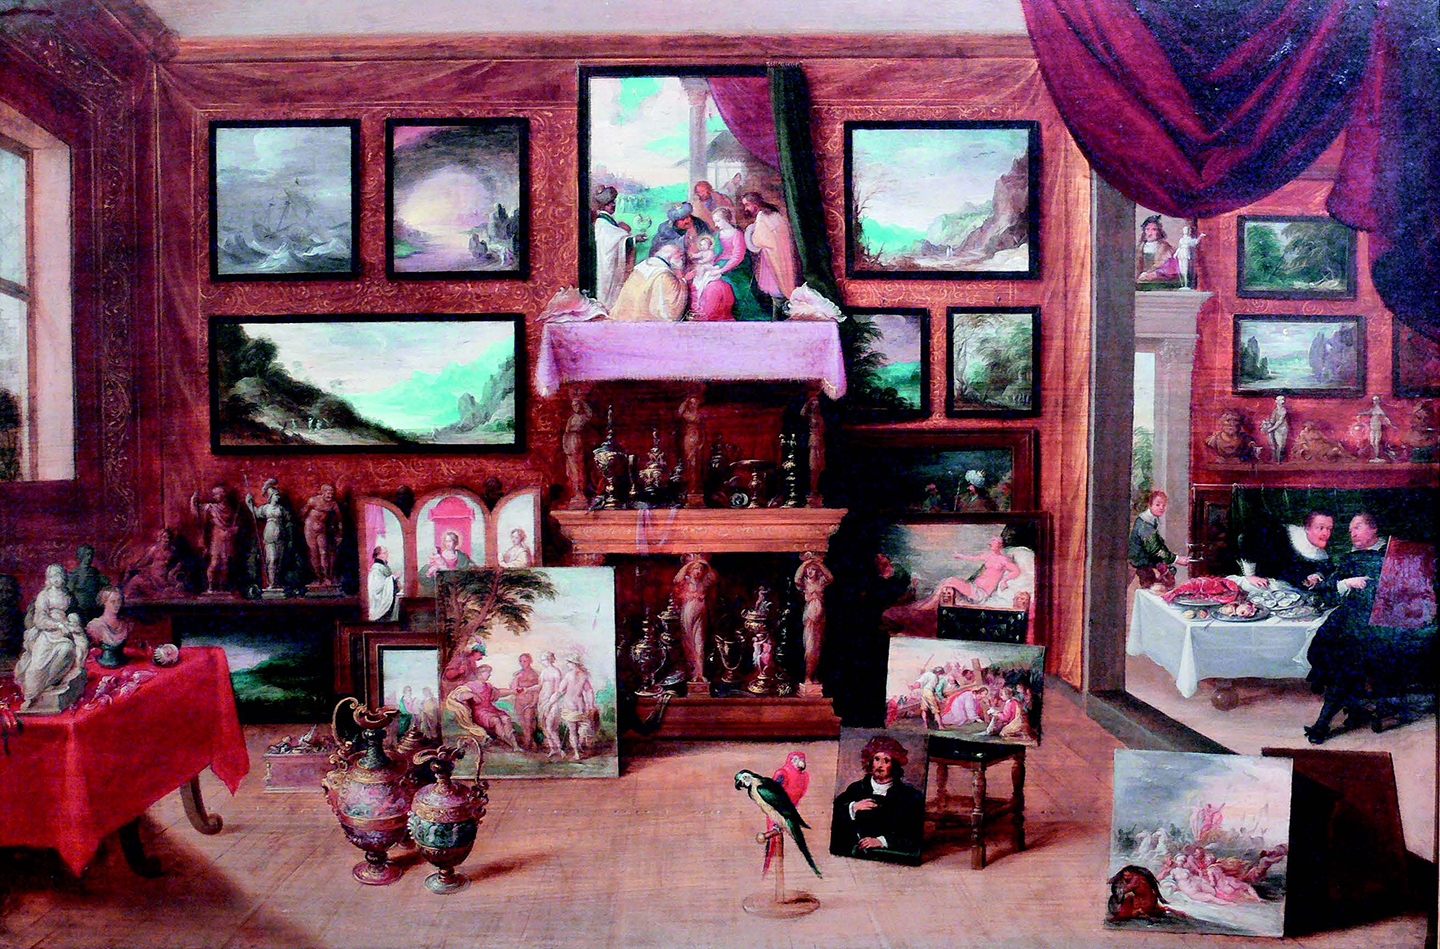 Painting depicting an early modern gallery of art and curiosities (Kunst und Wunderkammer), from the collection of the Reiss-Engelhorn Museum, Mannheim